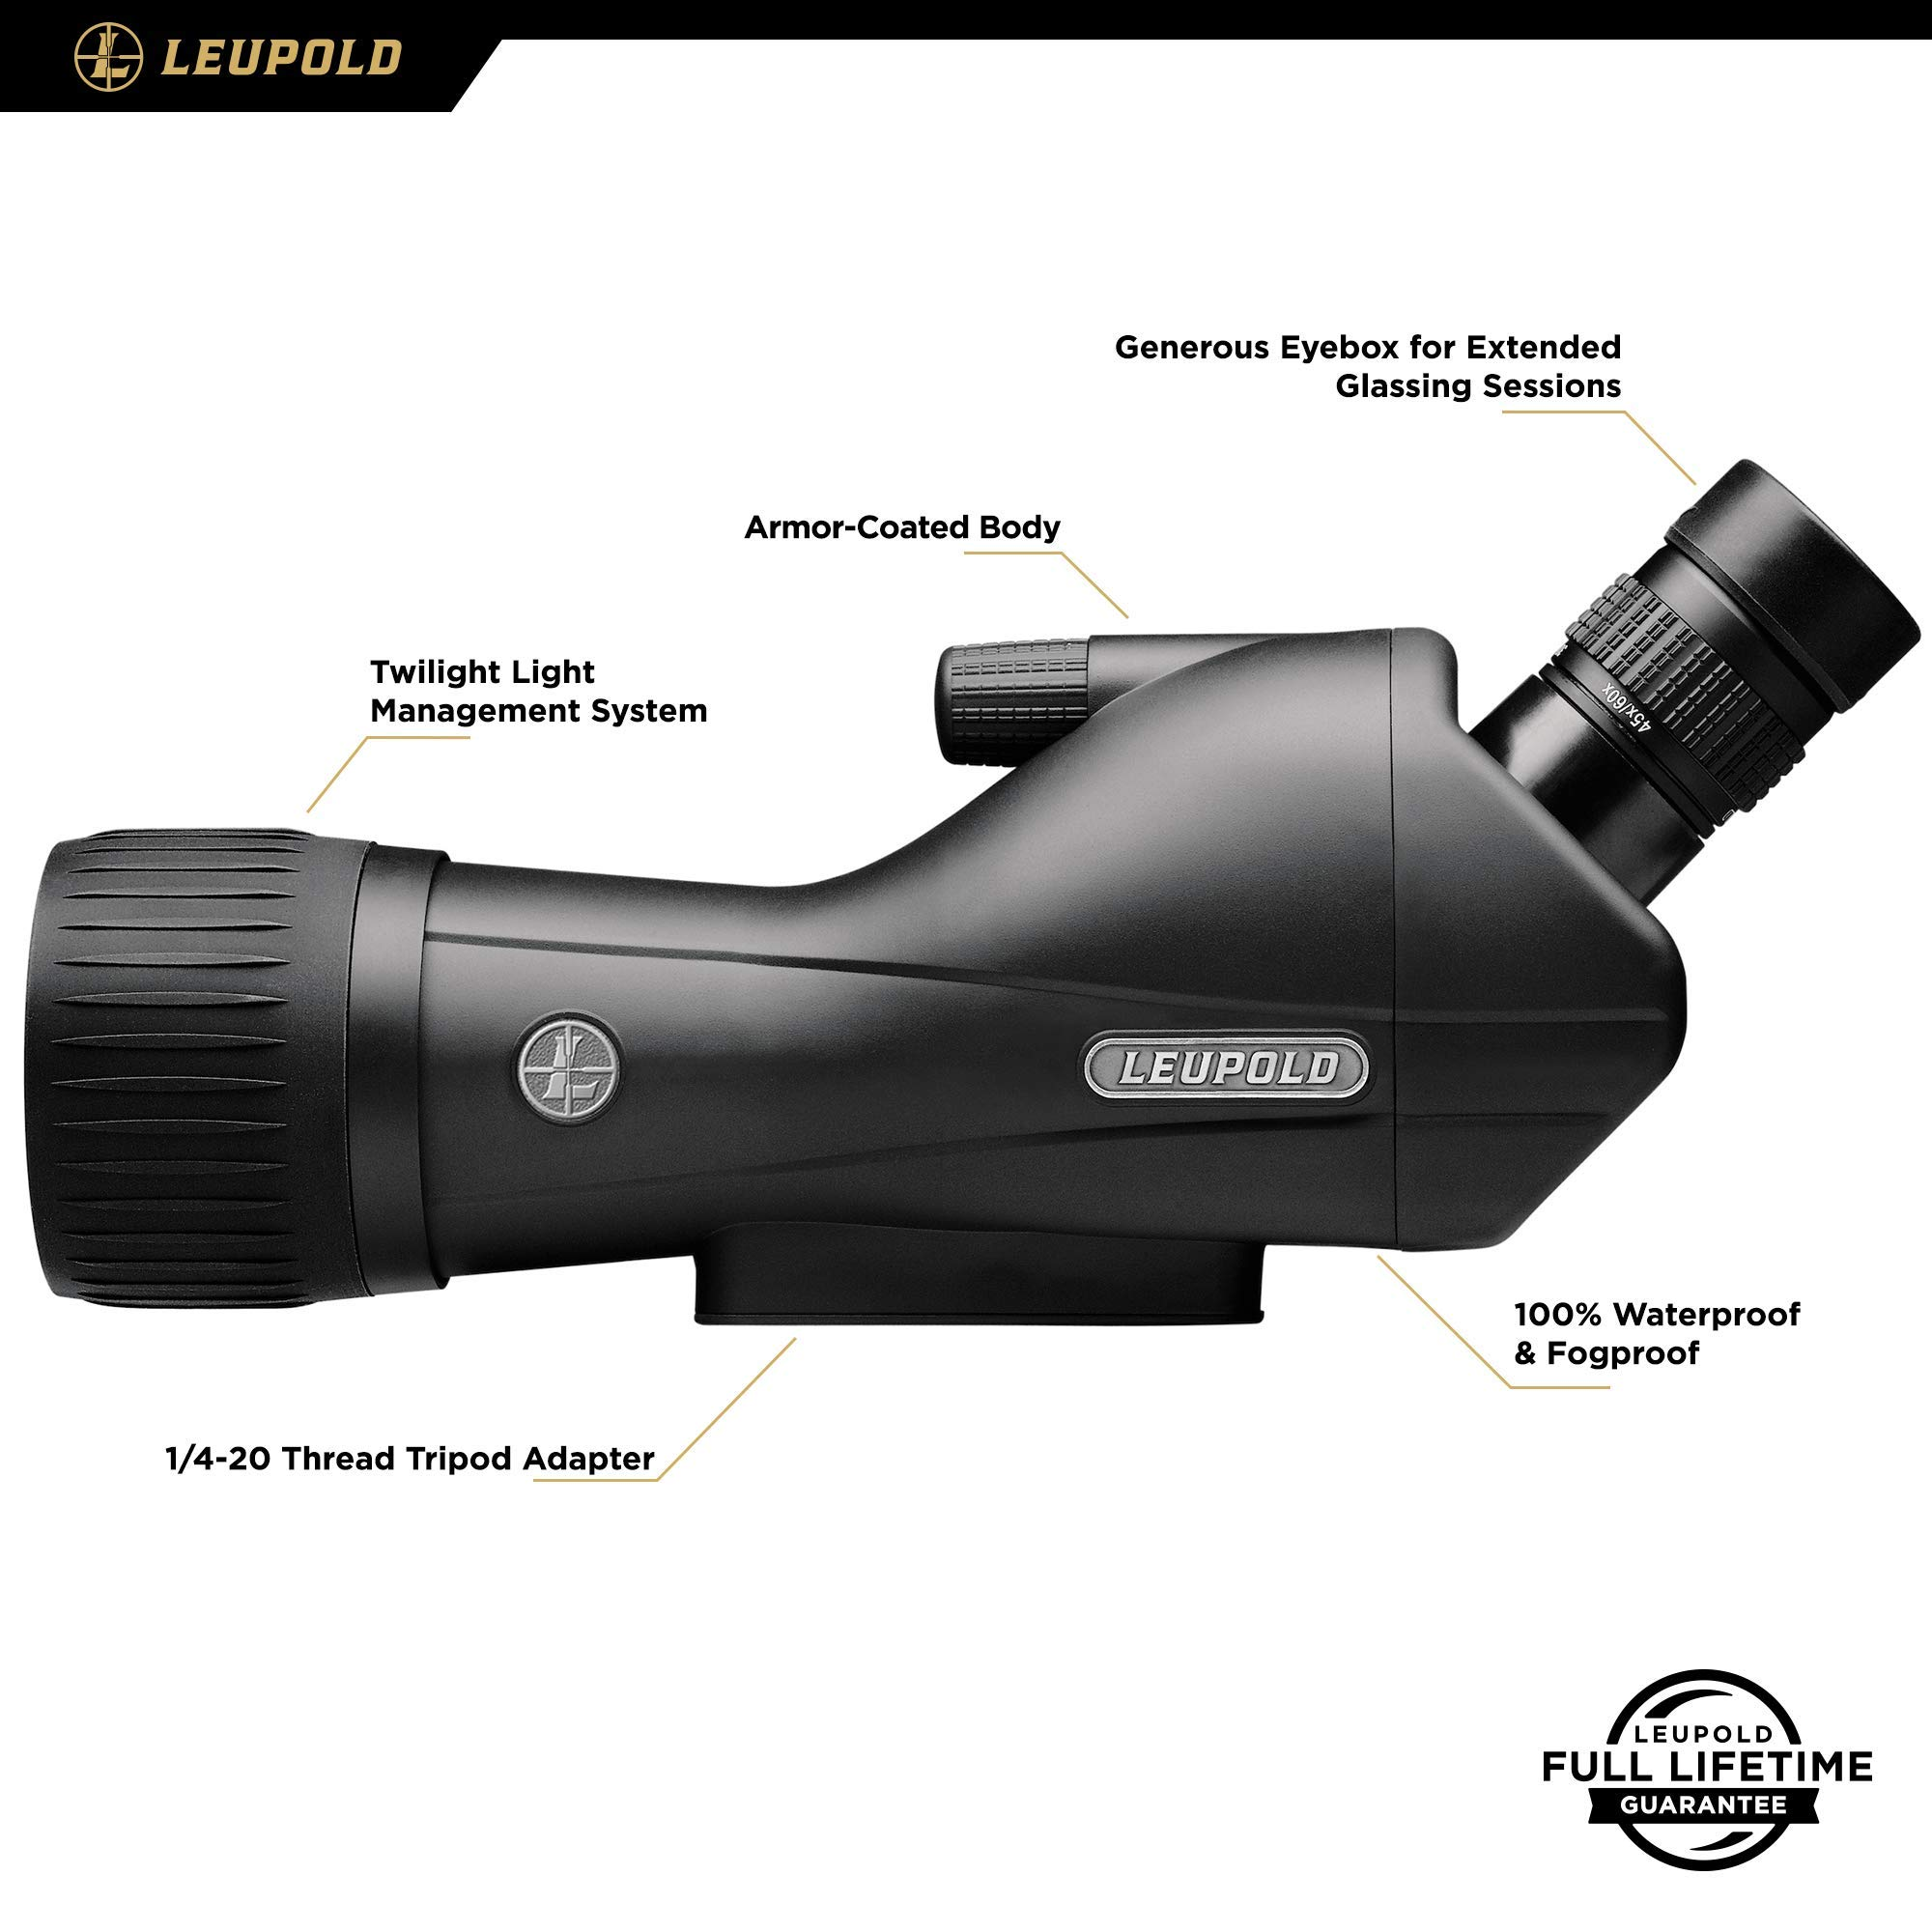 Leupold SX-1 Ventana 2 15-45x60mm Angled Spotting Scope, Black Finish by Leupold (Image #2)